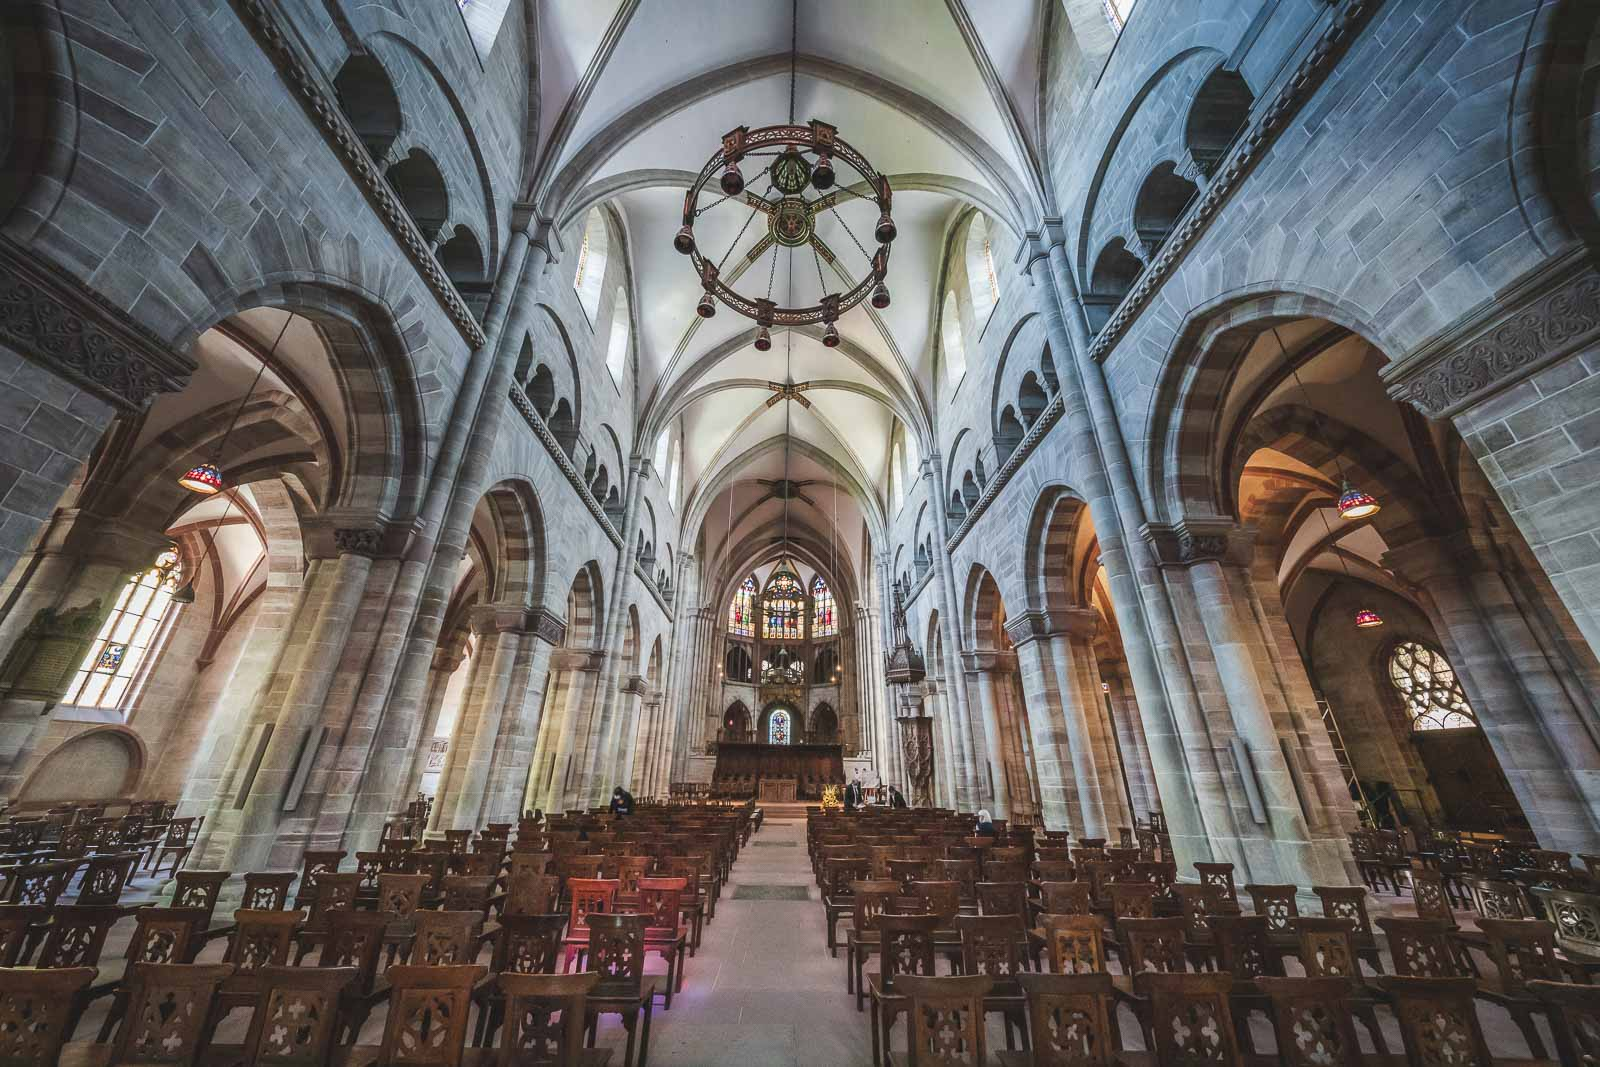 Explore the Basle Munster Cathedral